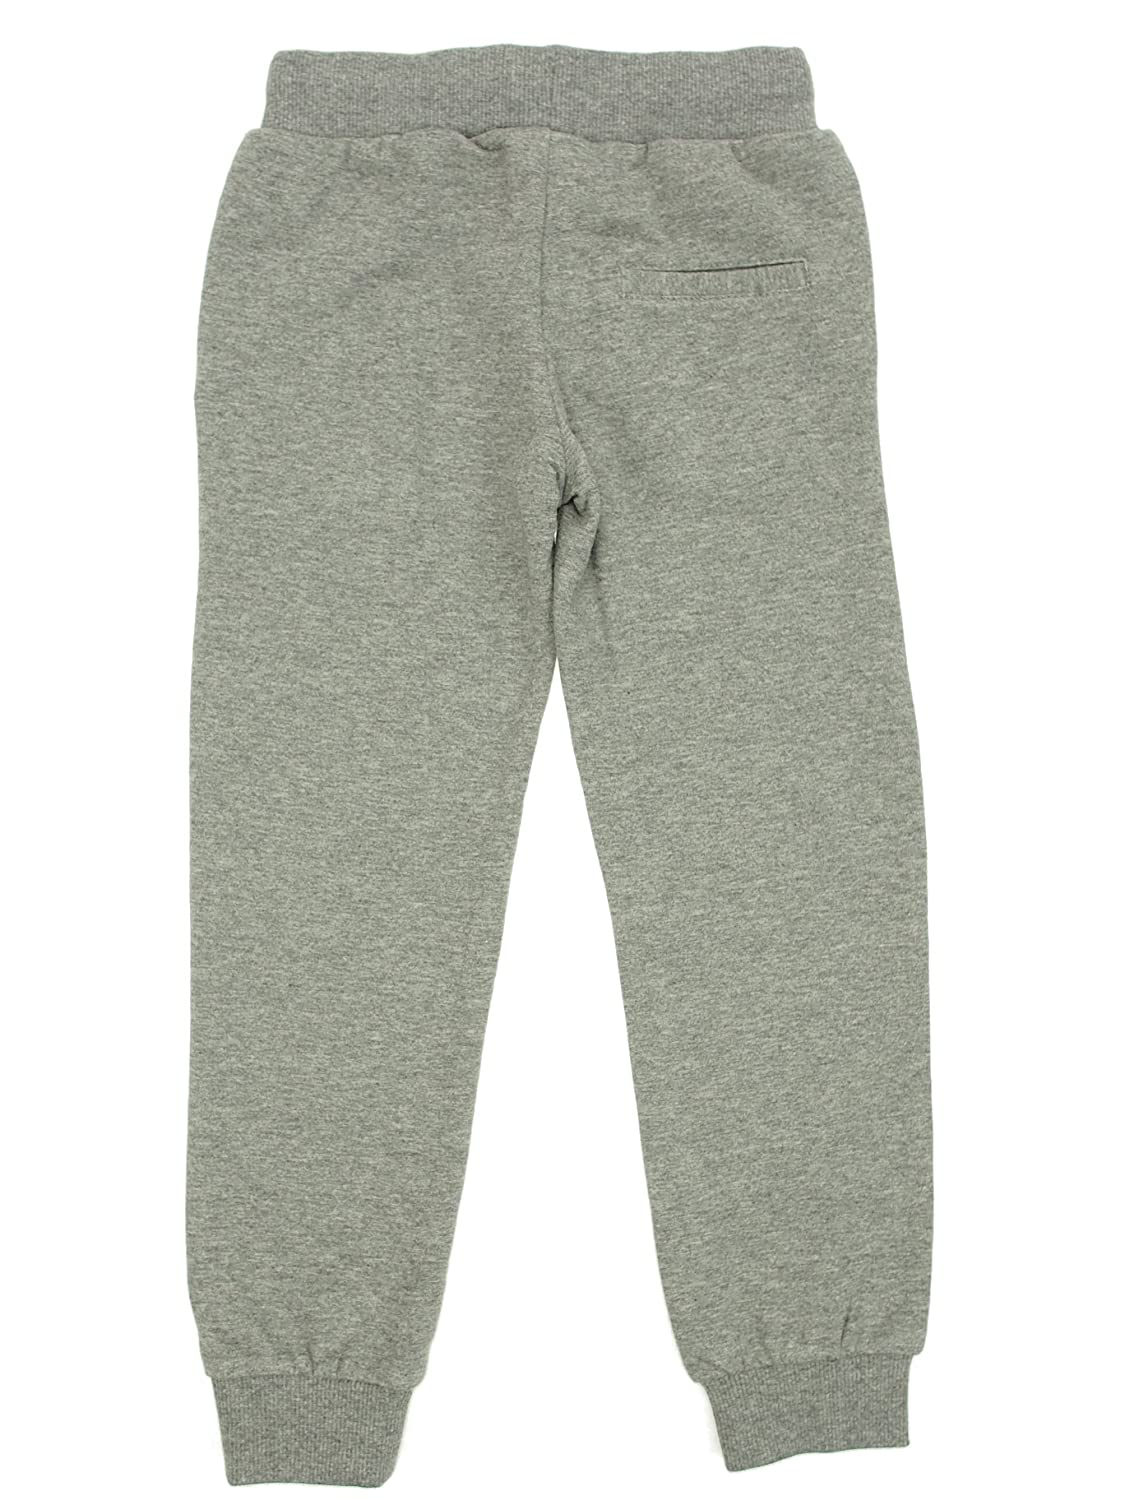 Mayoral Basic Cuffed Fleece Trousers for Boys Bright Lea 0742